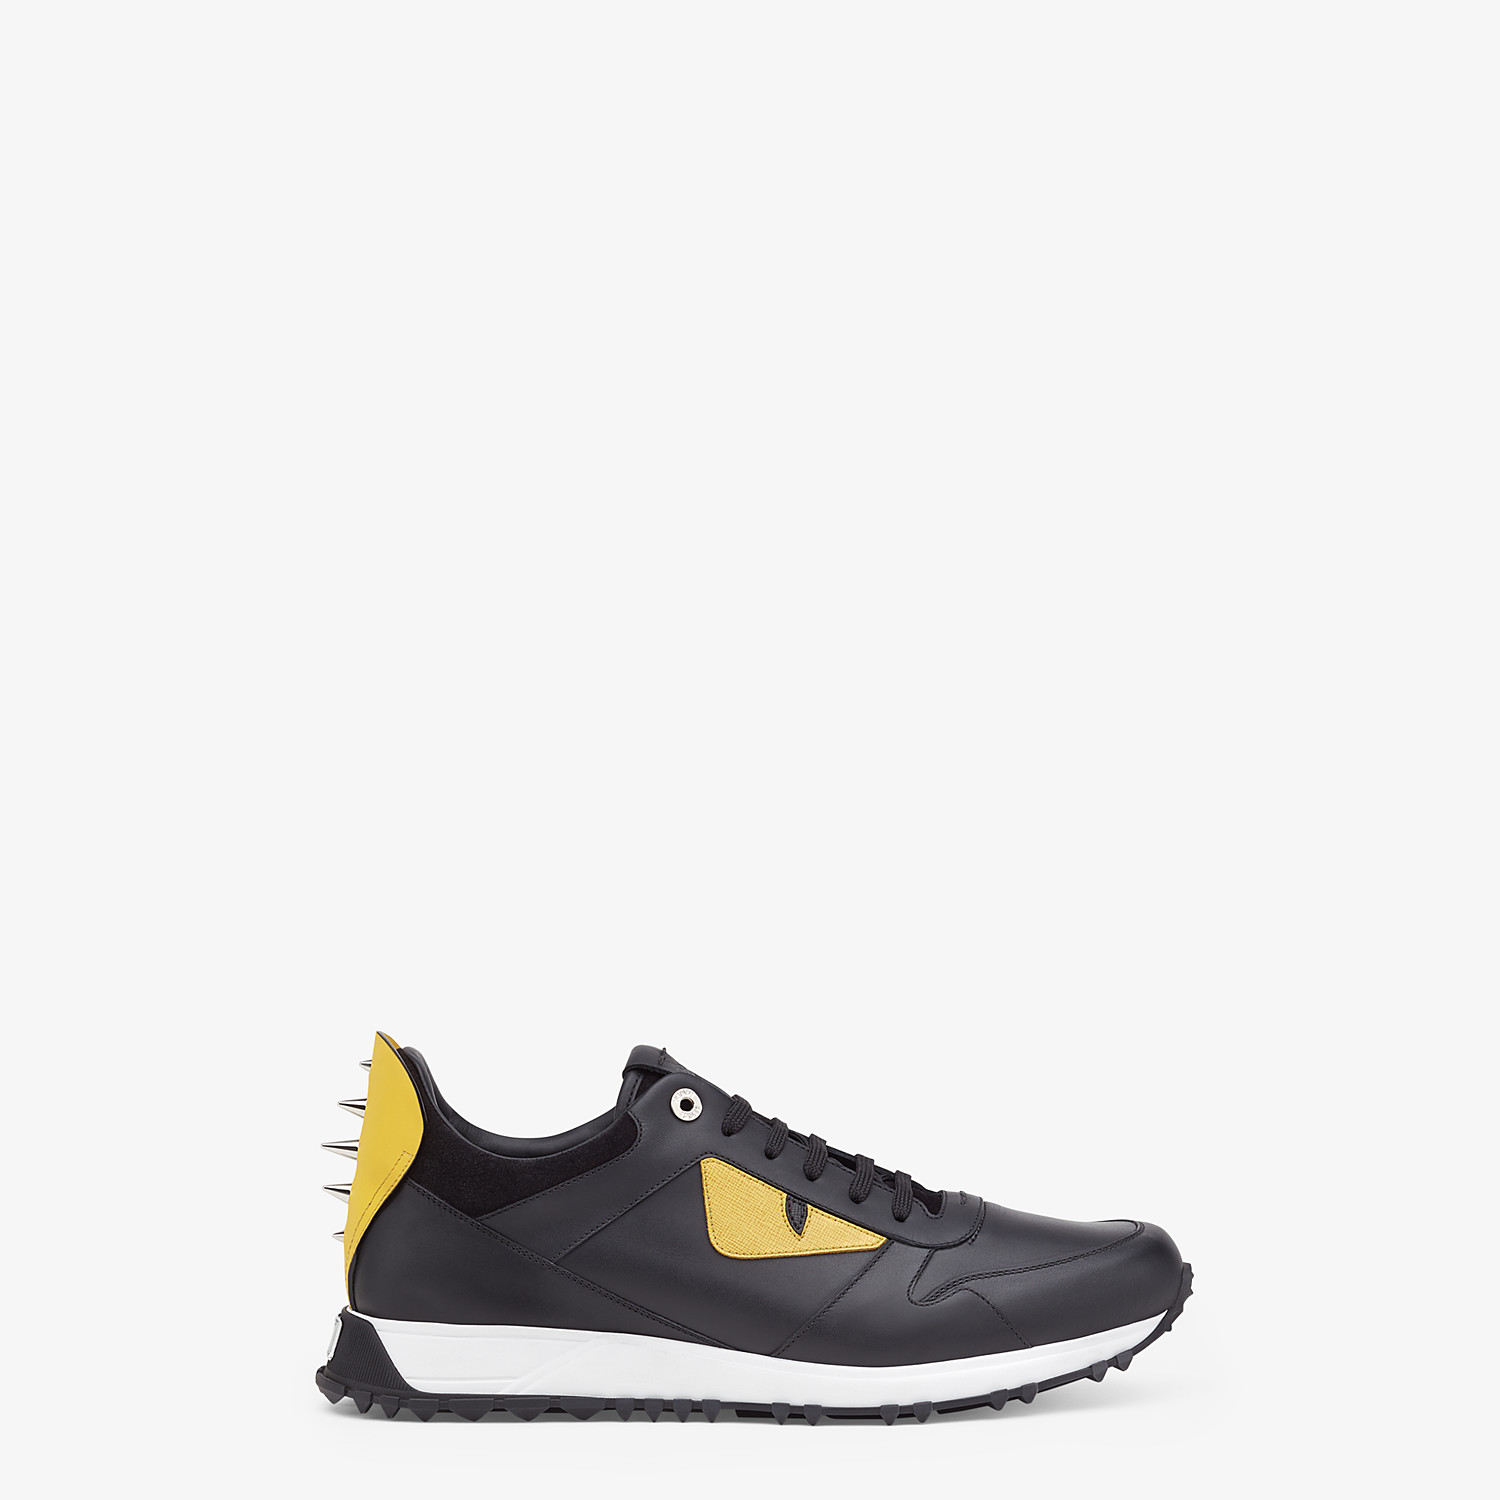 FENDI SNEAKER - Black and yellow leather lace-up - view 1 detail